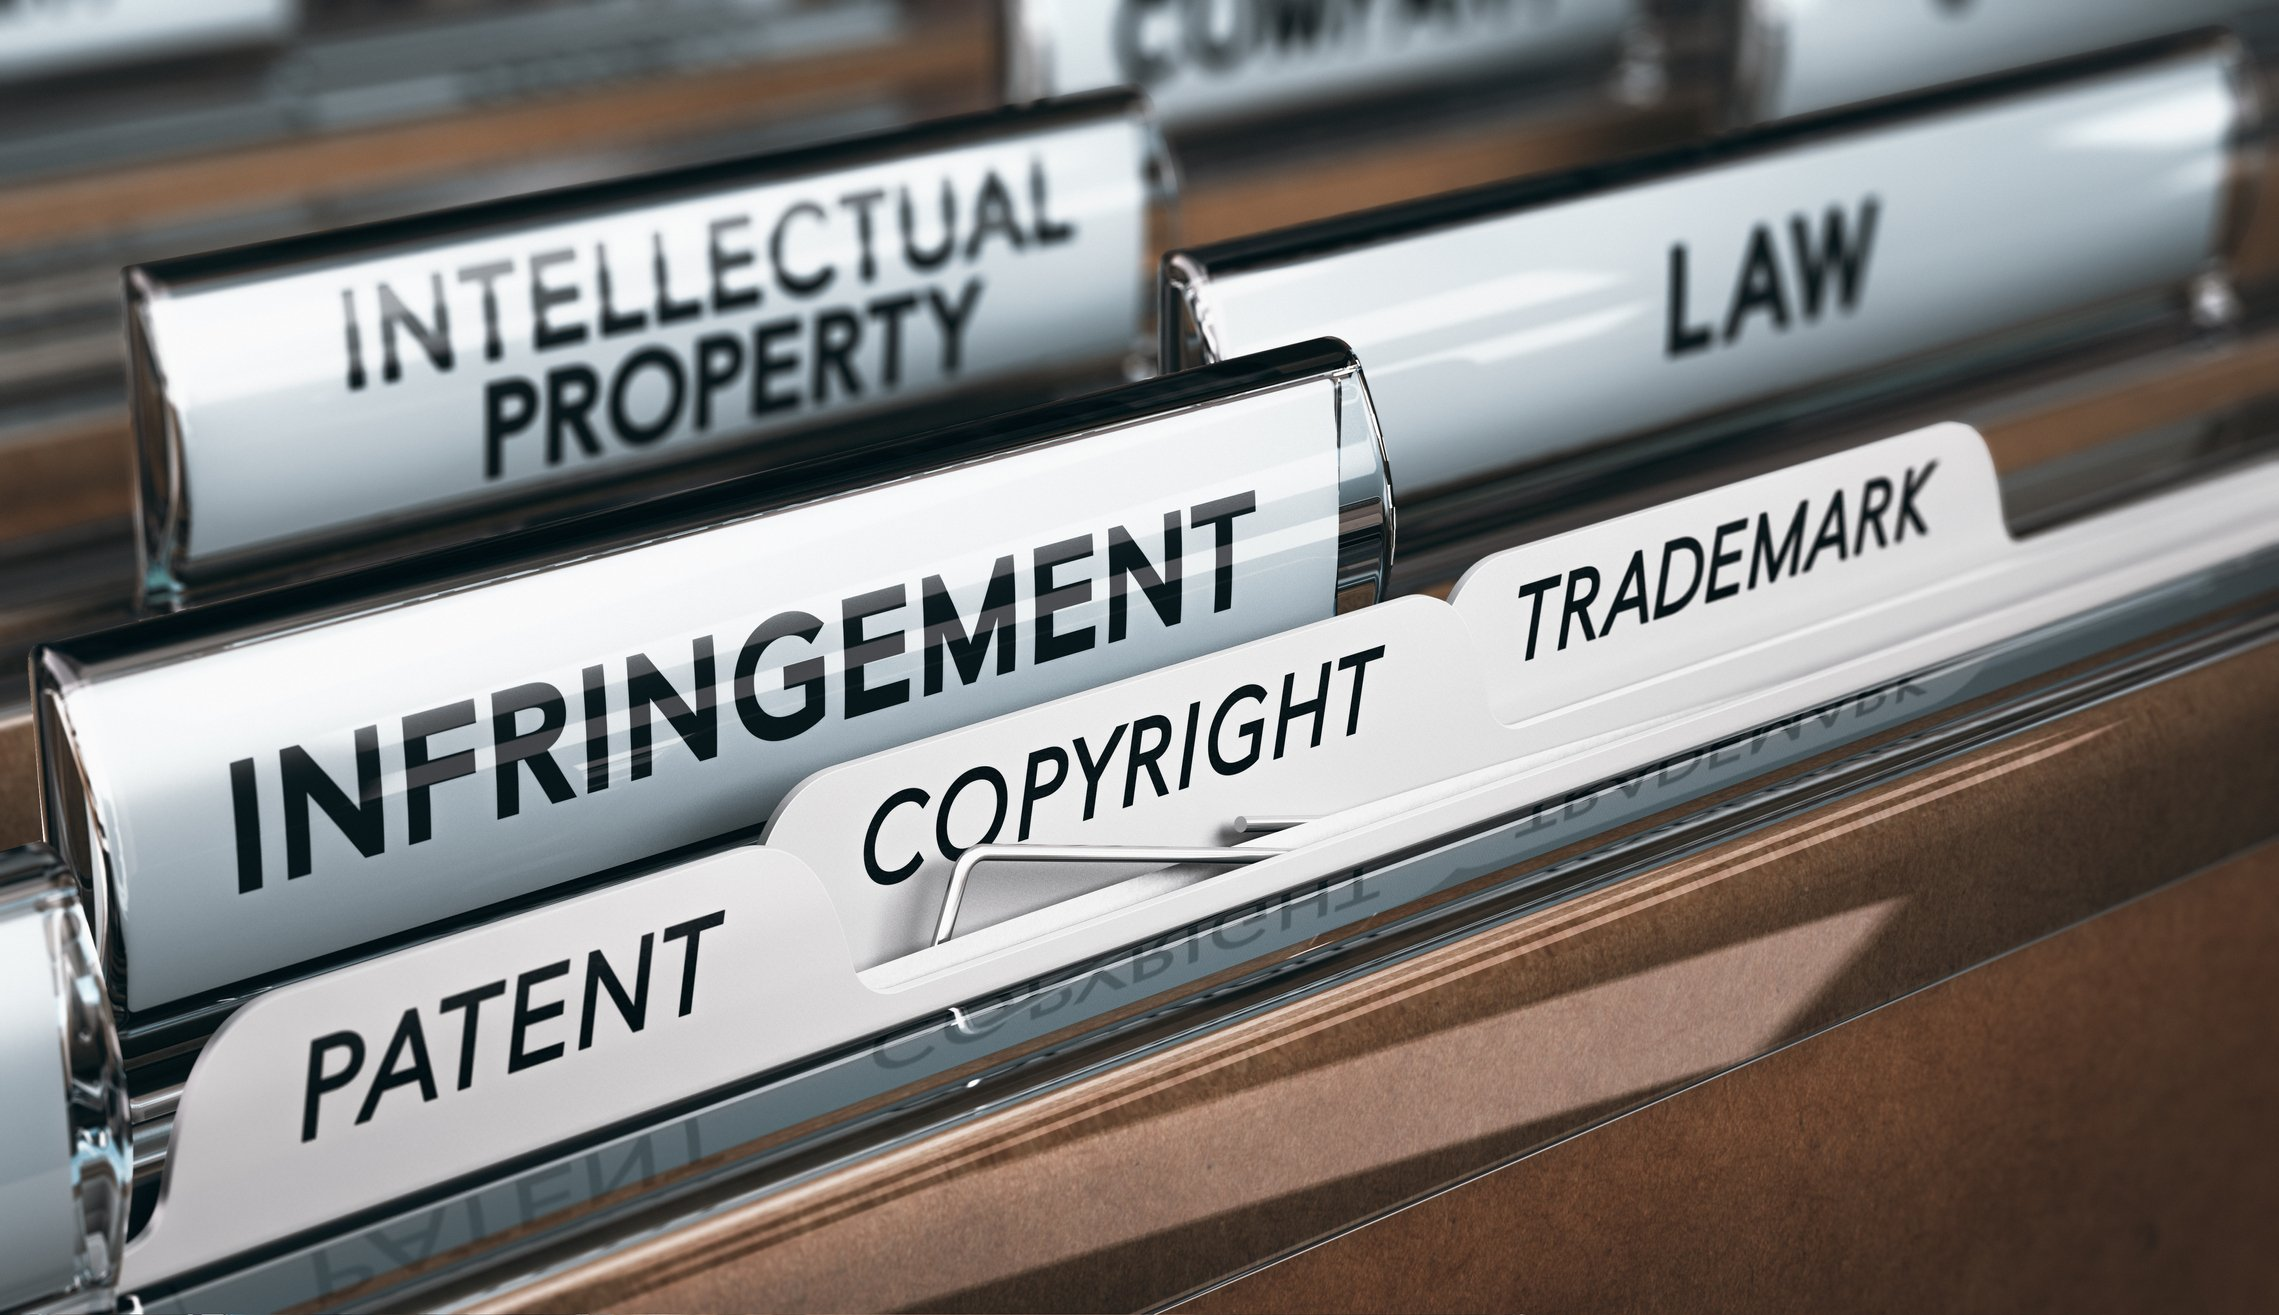 Intellectual Property Rights, Copyright, Patent or Trademark Infringement